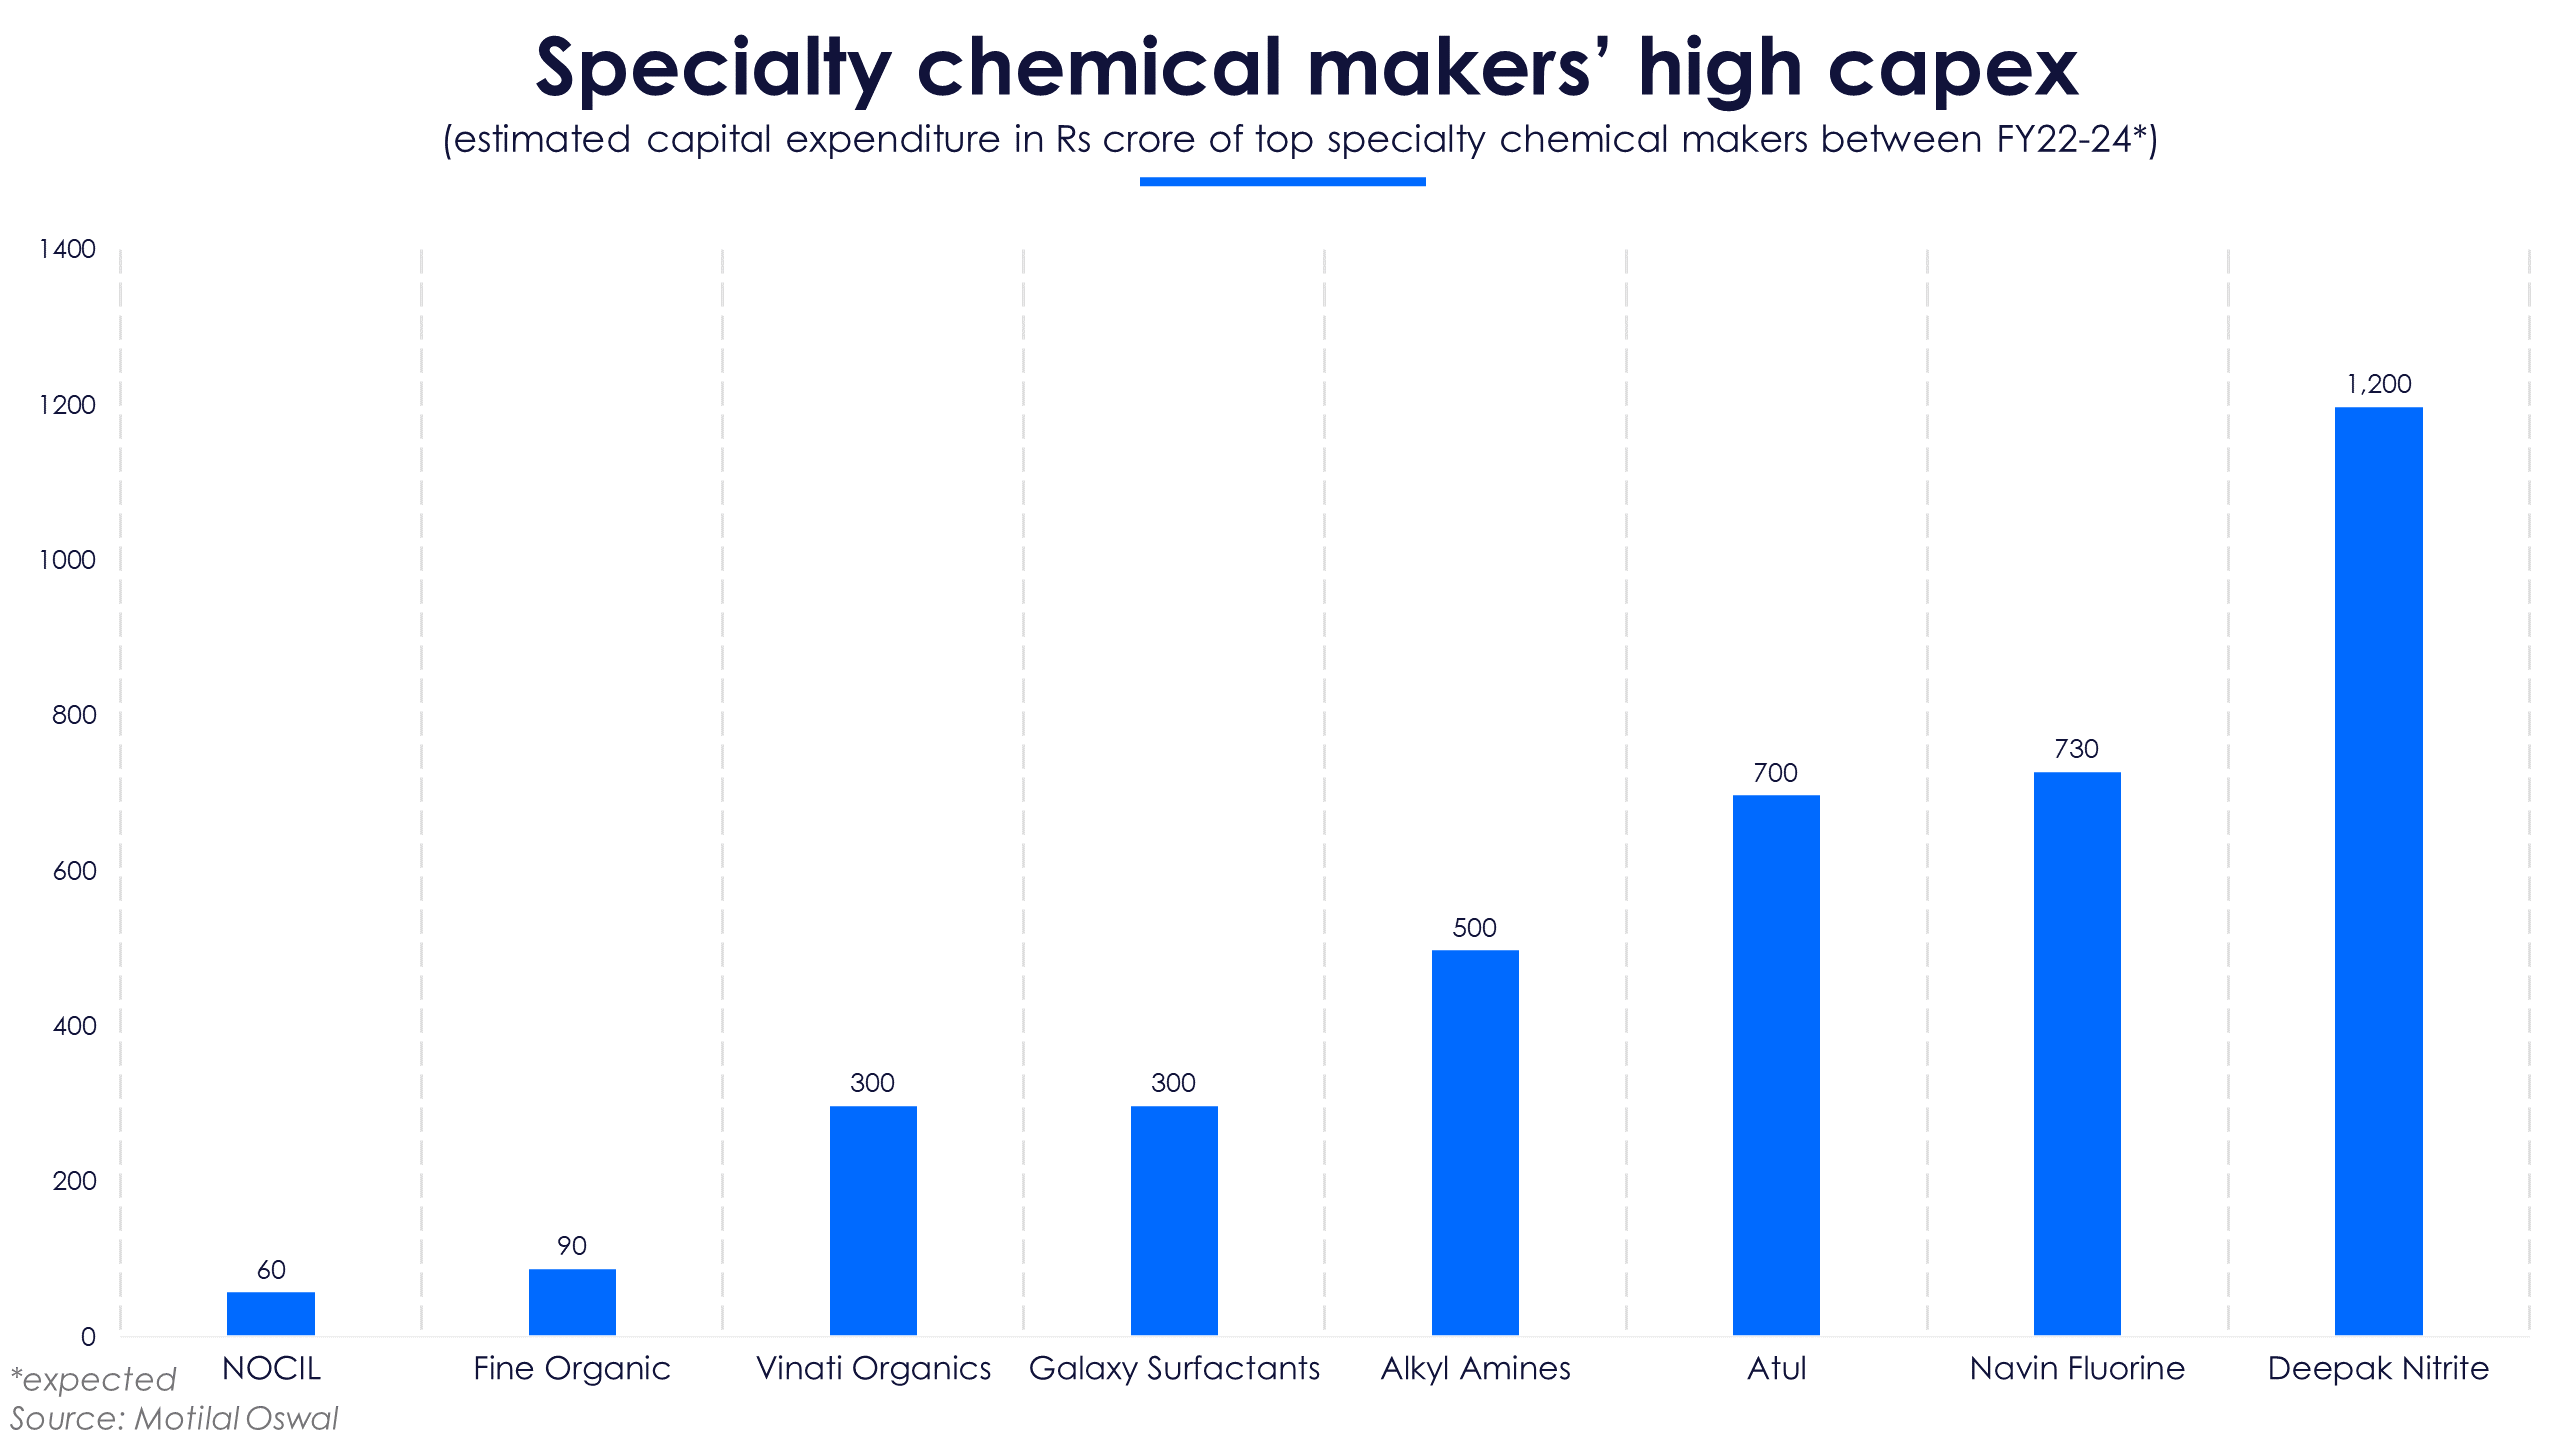 Specialty chemicals capex